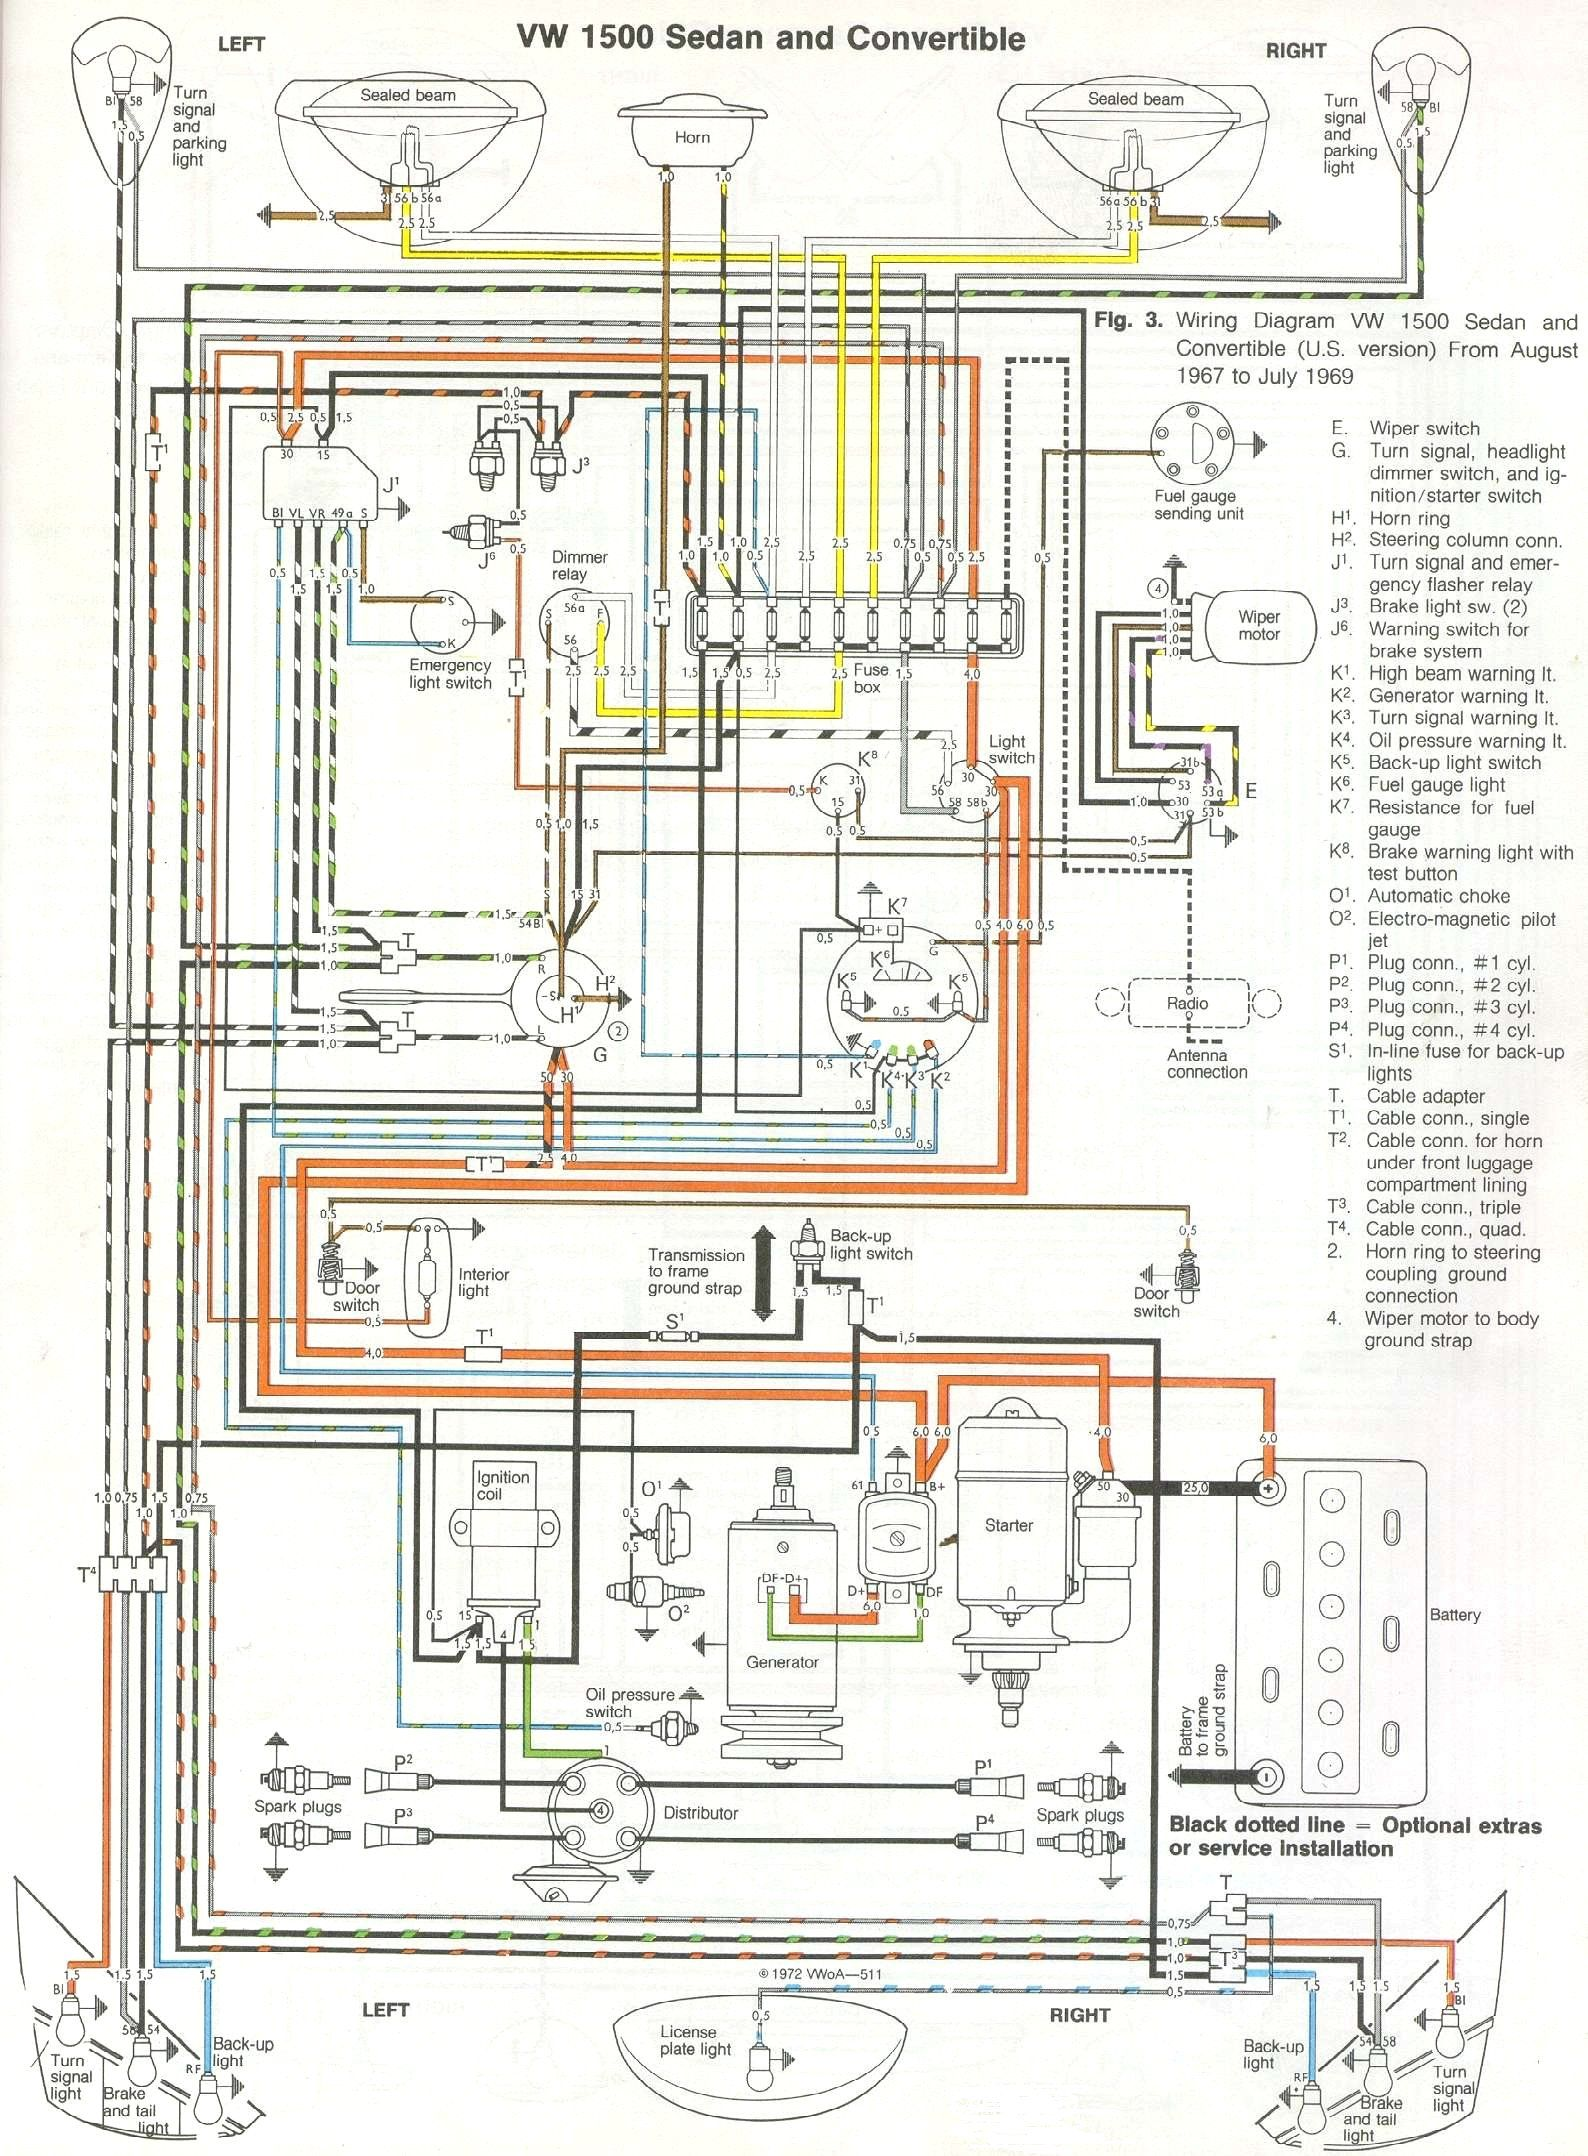 1971 vw wiring diagram wiring diagram data val 1971 vw camper wiring diagram [ 1588 x 2156 Pixel ]